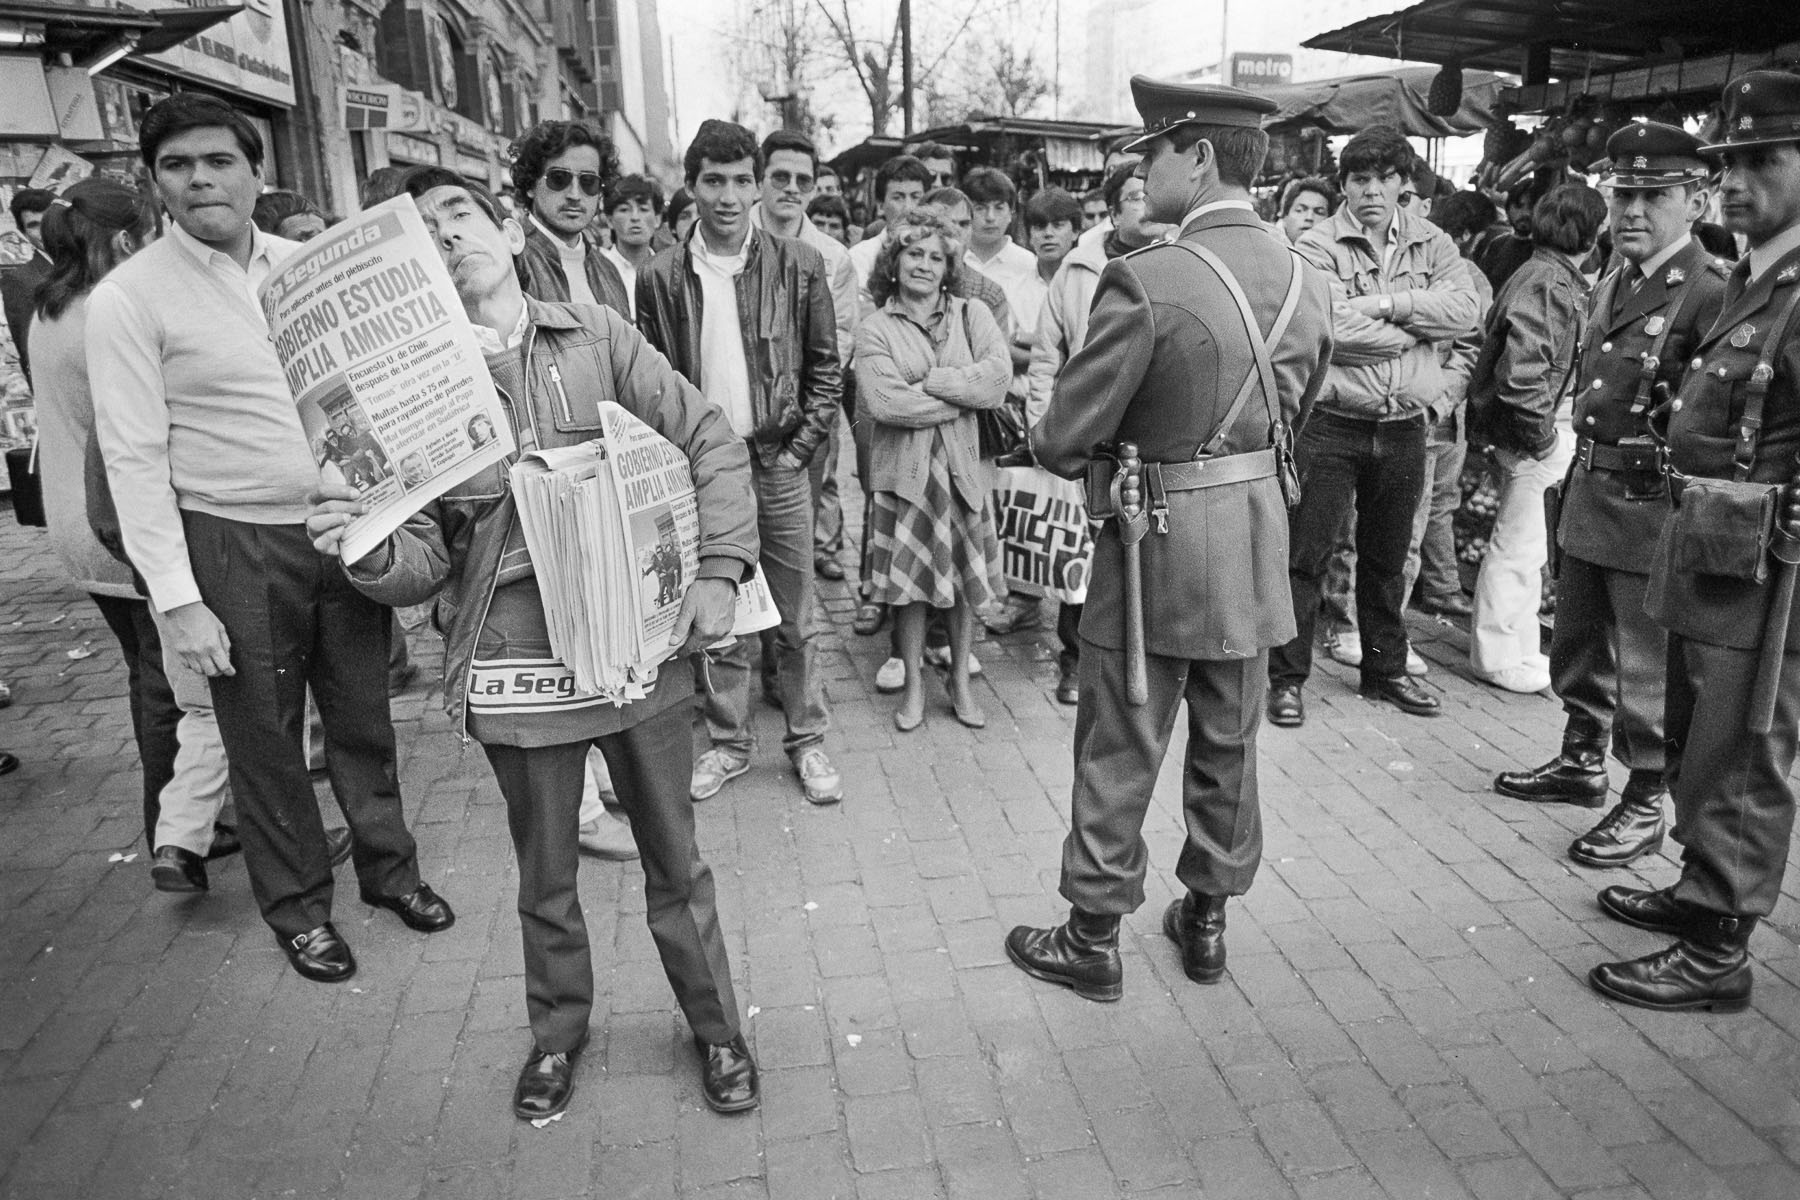 Newspapers vendor in October 1988